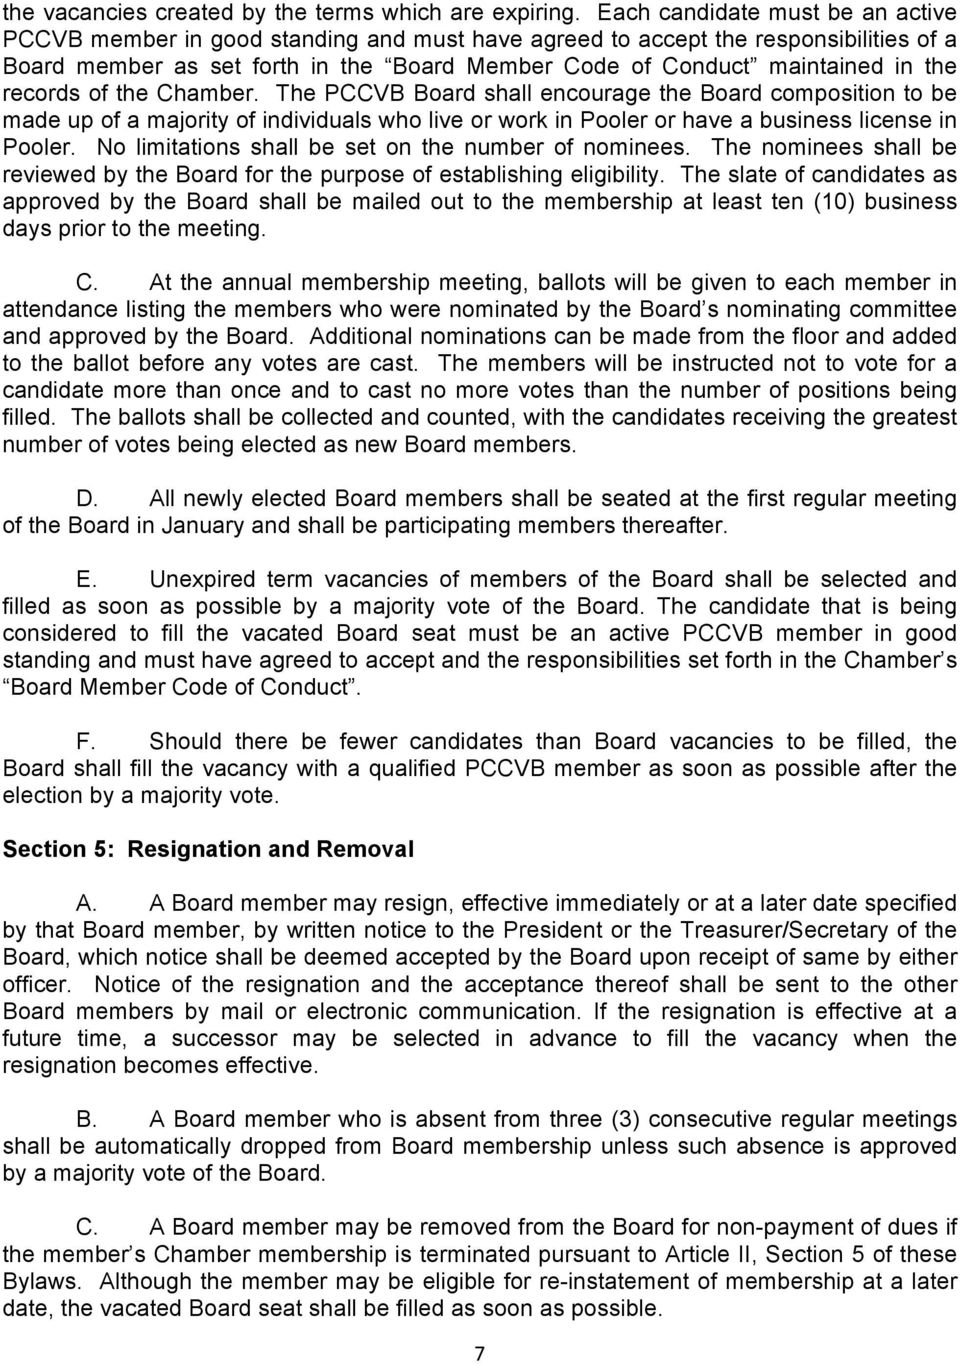 records of the Chamber. The PCCVB Board shall encourage the Board composition to be made up of a majority of individuals who live or work in Pooler or have a business license in Pooler.